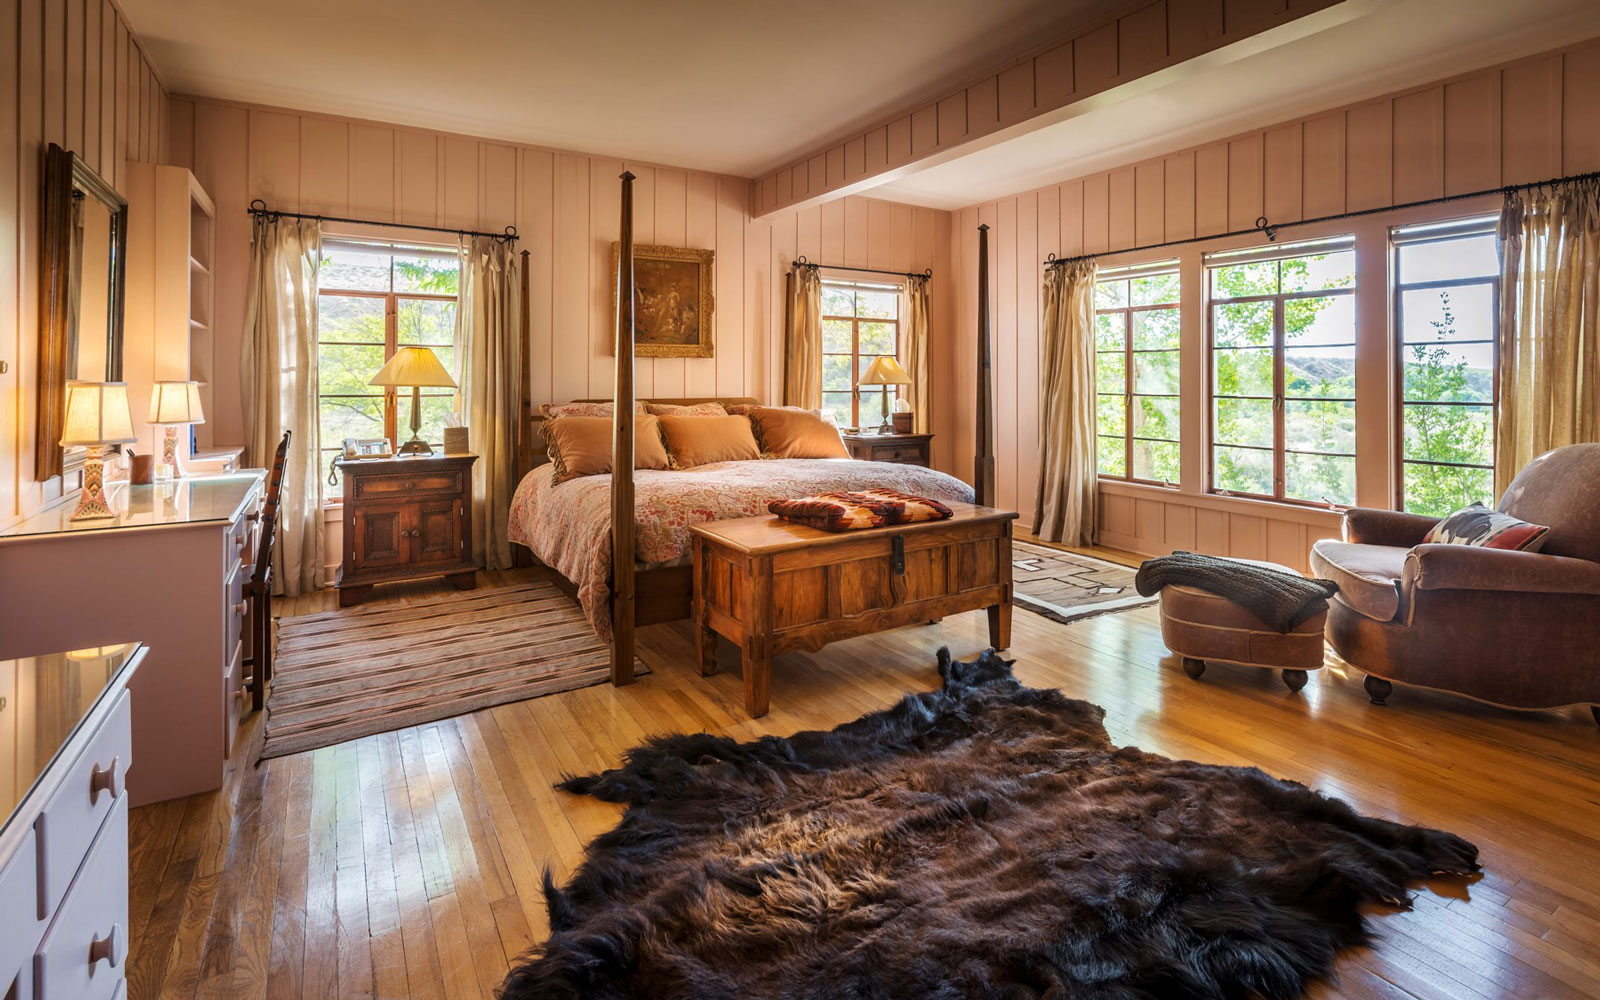 Now You Can Rent Ted Turner's Home | Travel + Leisure ... Ranch Bunkhouse Designs on ranch duplex designs, ranch house designs, ranch pool designs, ranch kitchen designs, ranch bungalow designs, ranch office designs,